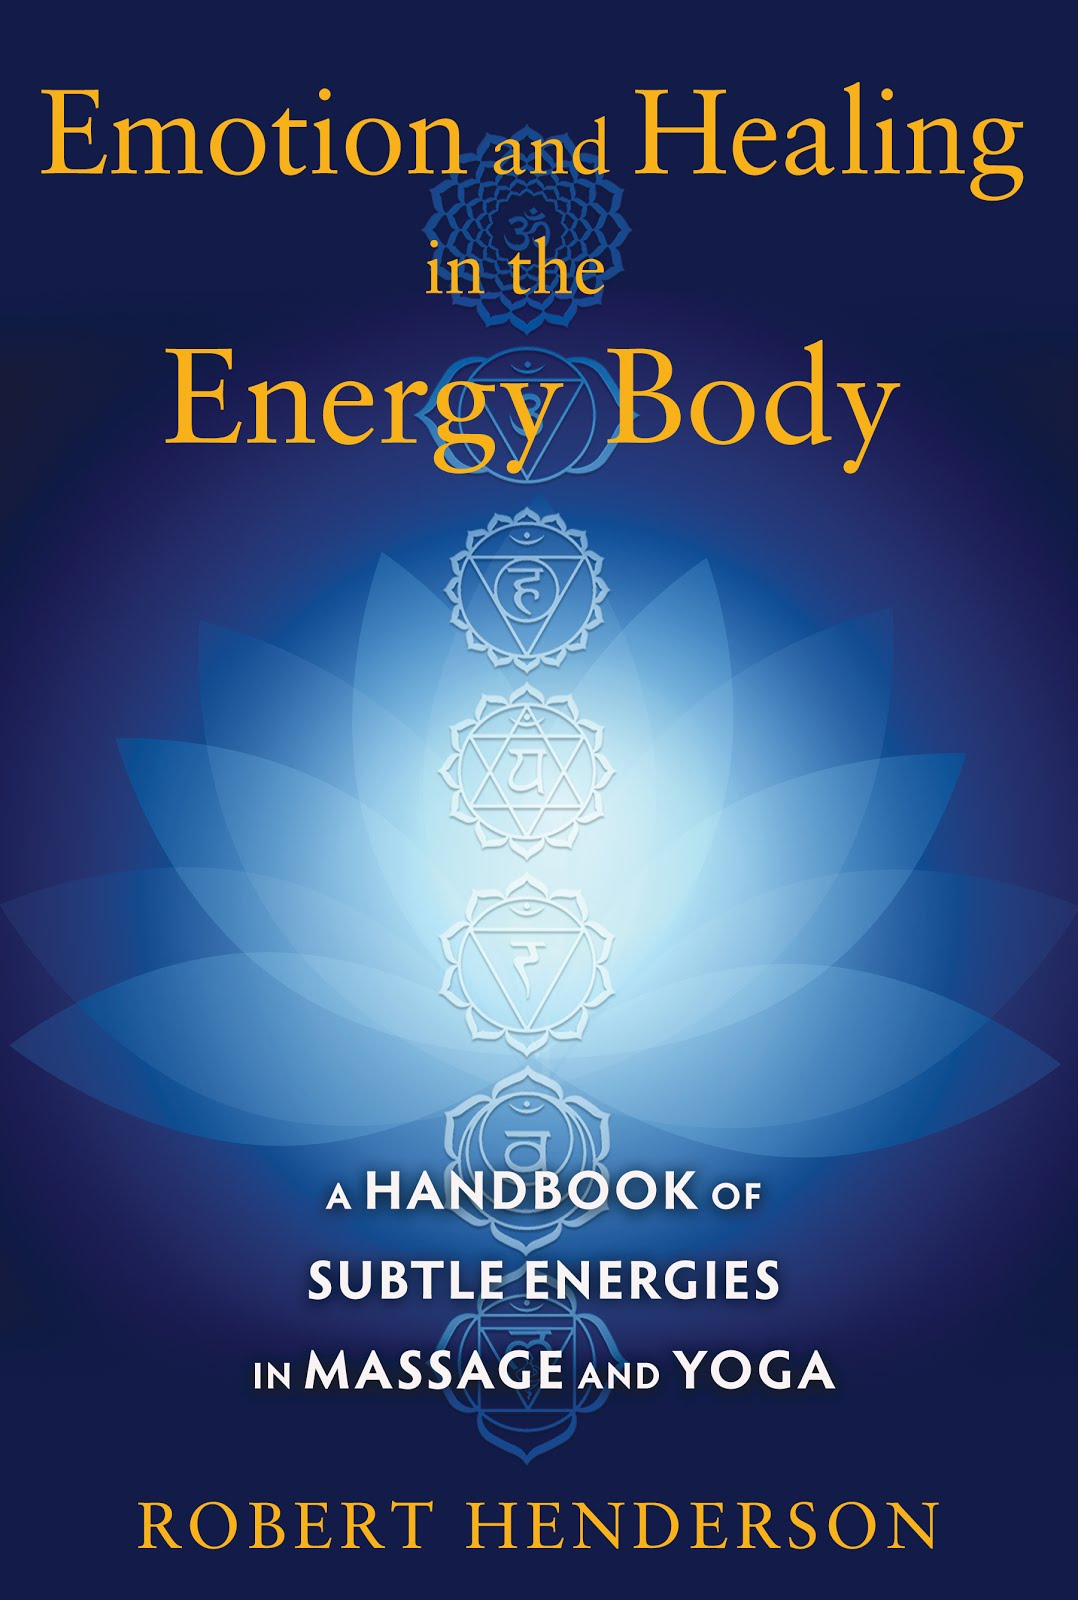 Emotion and Healing in the Energy Body